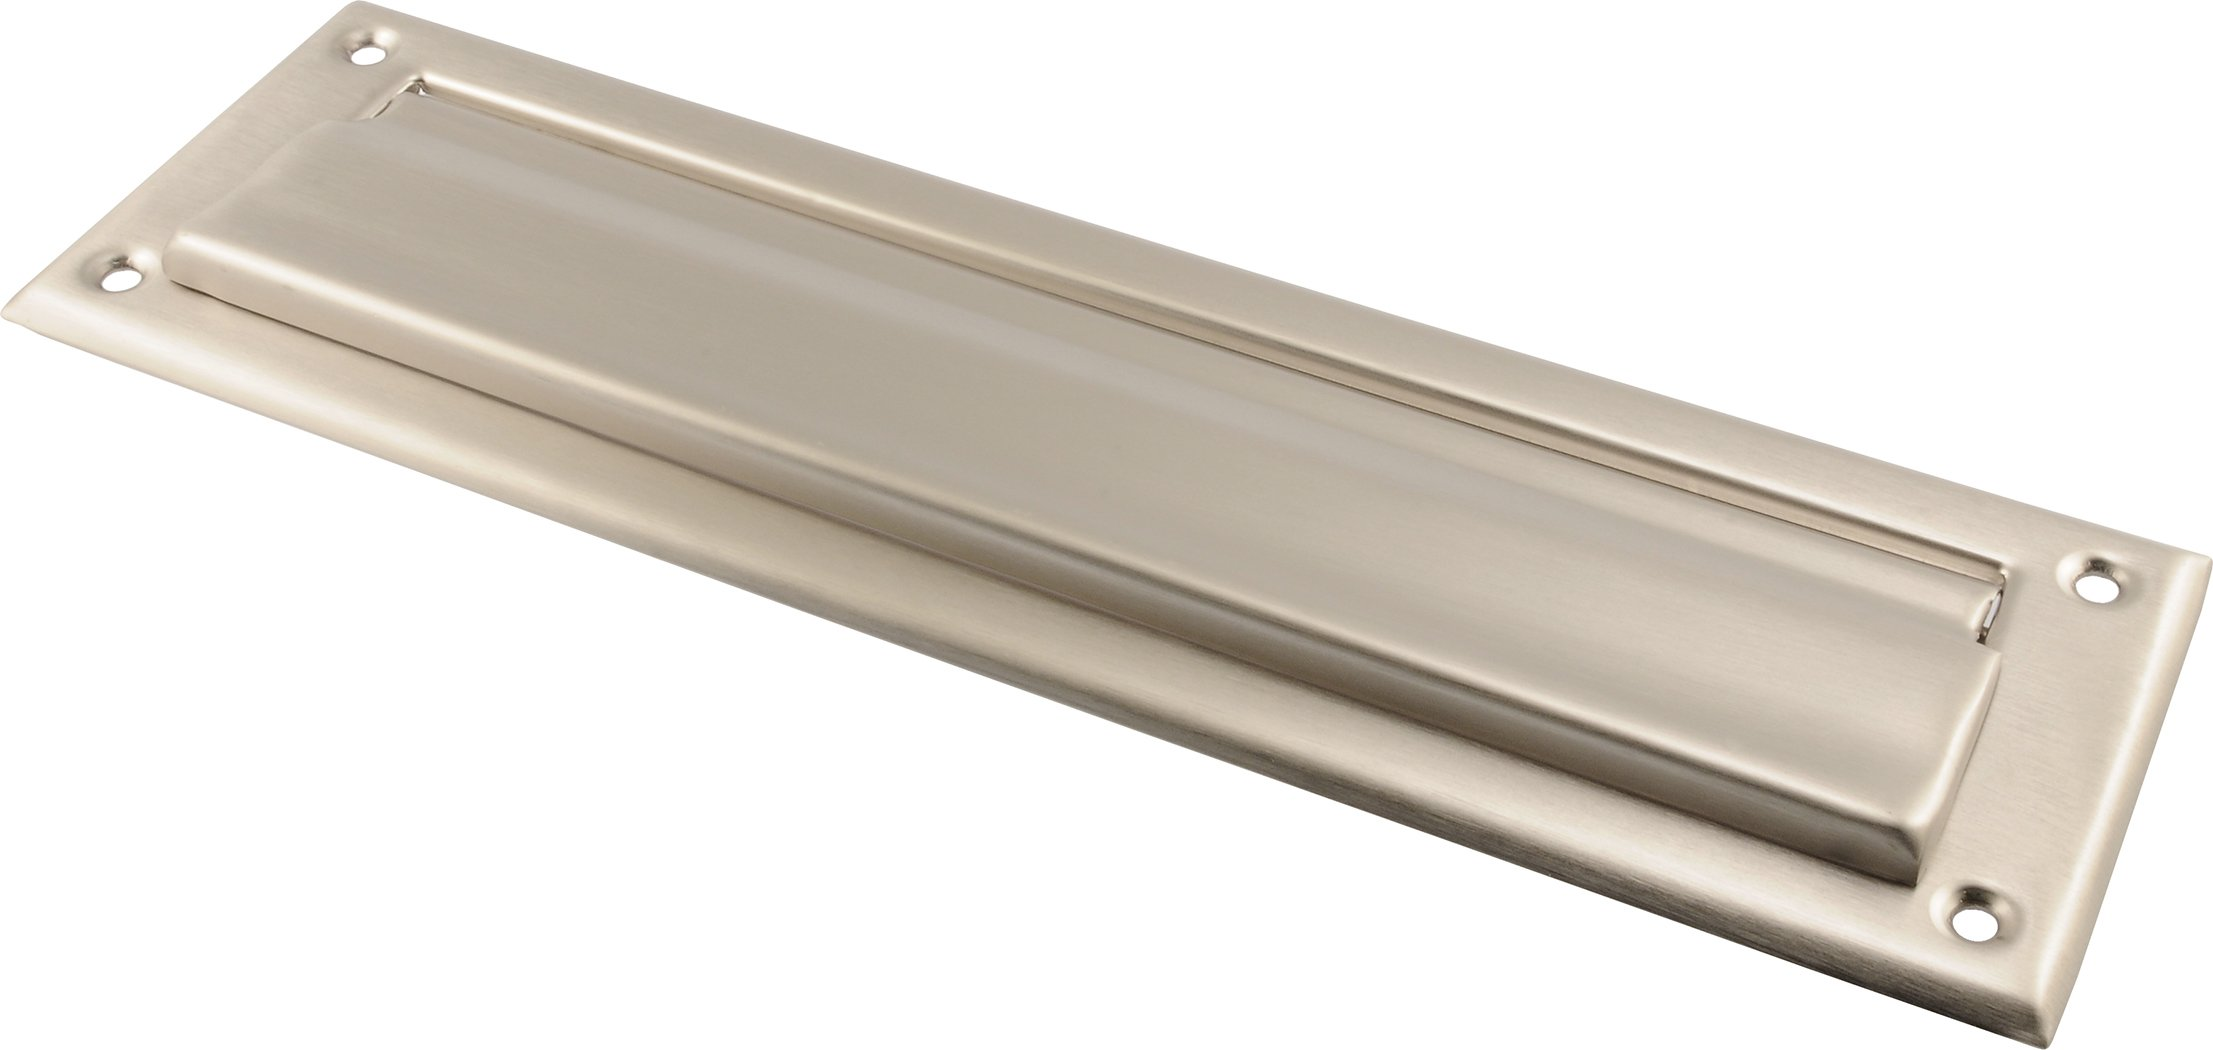 The Hillman Group The Hillman Group 853334 2 x 11'' Mail Slot- Solid Brass - Satin Nickel Finish 1-Pack